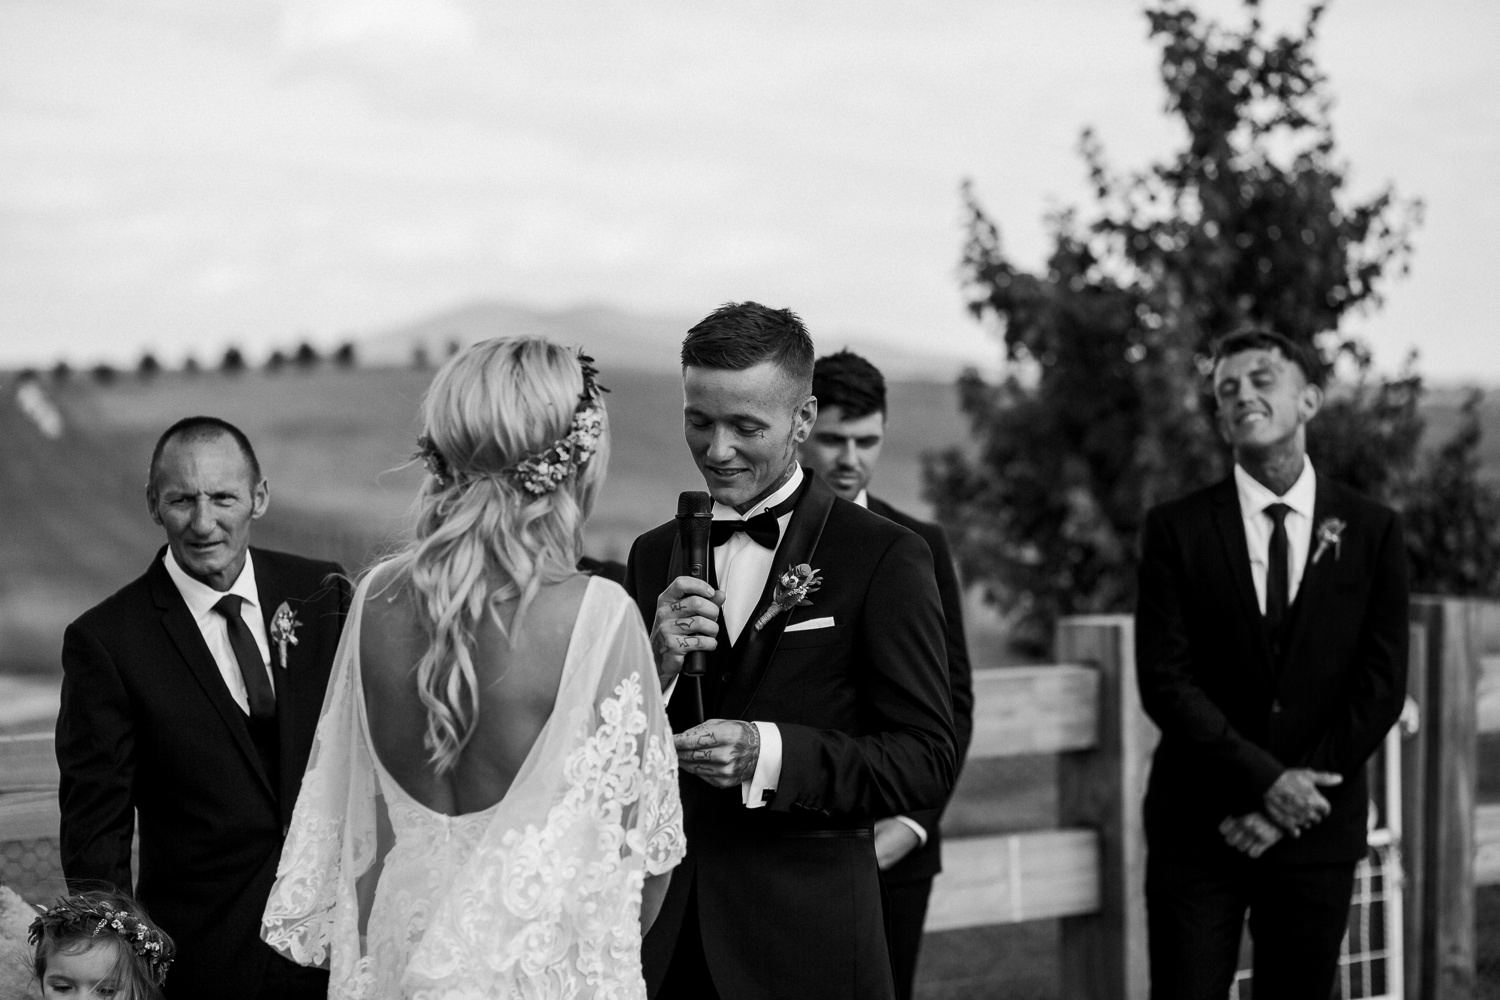 zonzo-estate-yarra-valley-wedding-photographer_0060.jpg